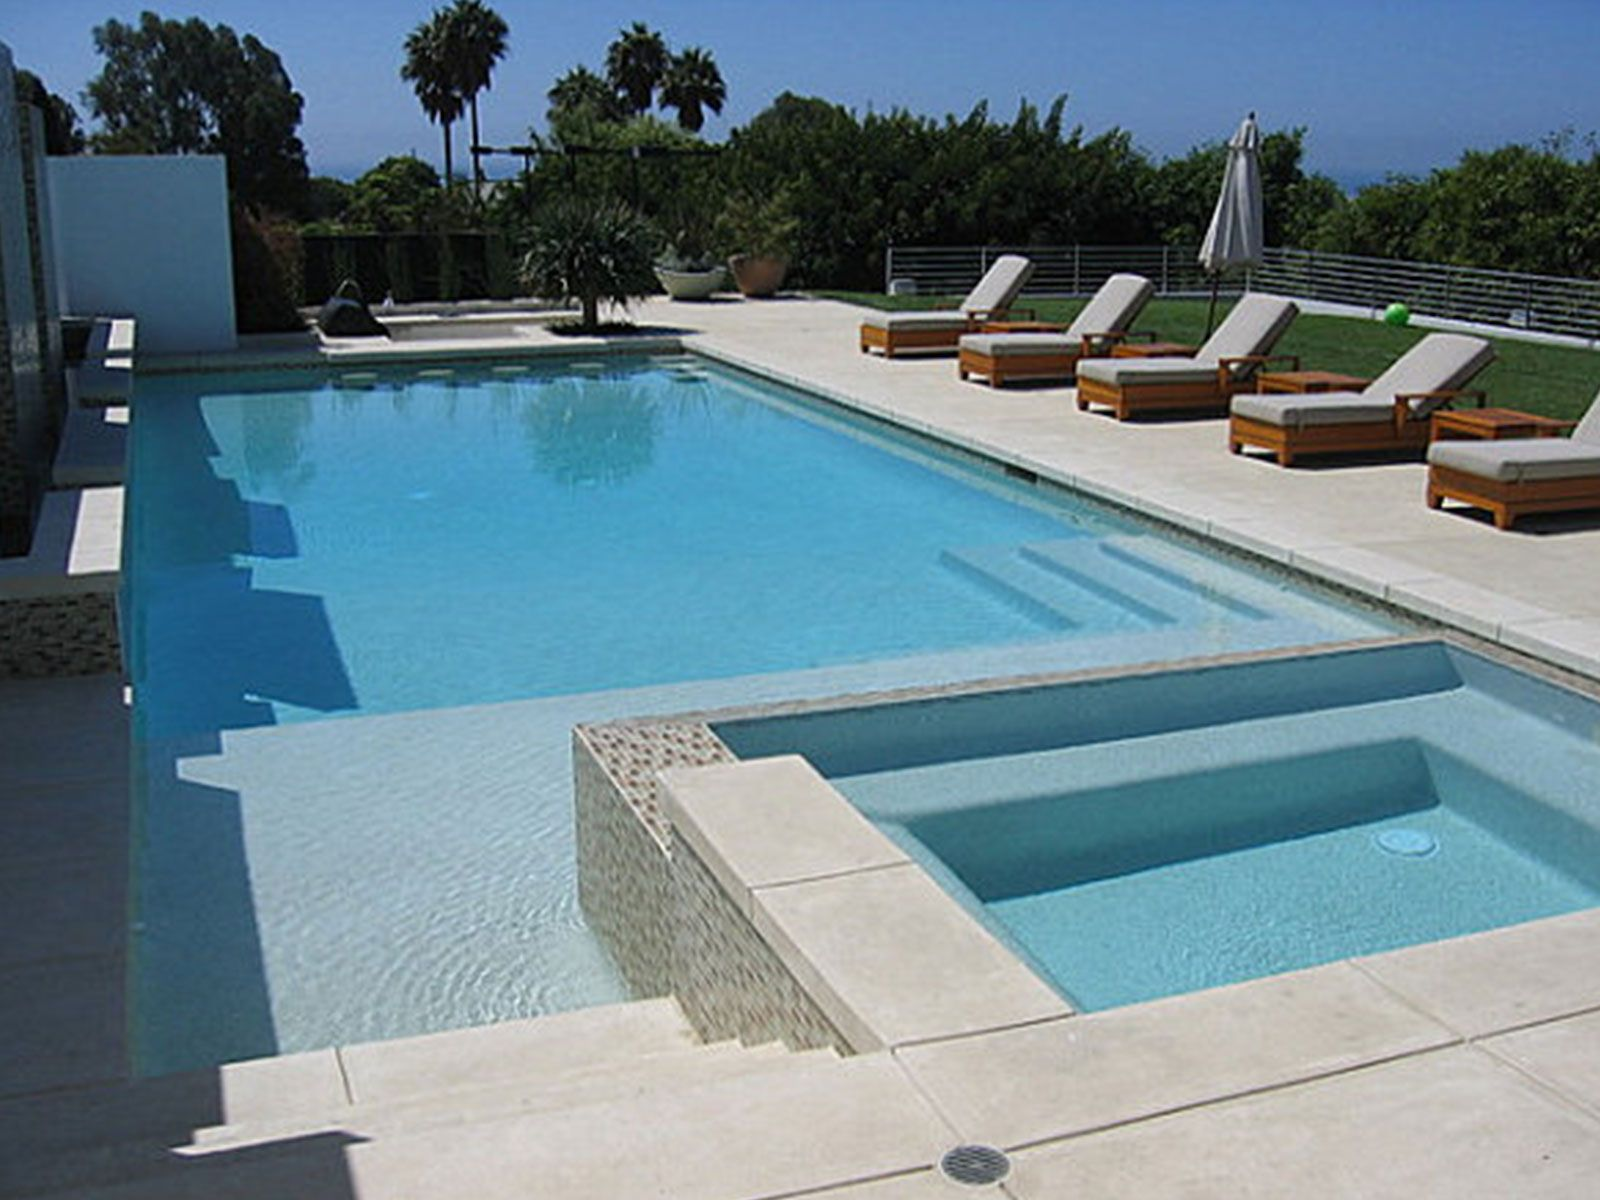 Simple swimming pool design image modern creative swimming for Garden pool designs ideas